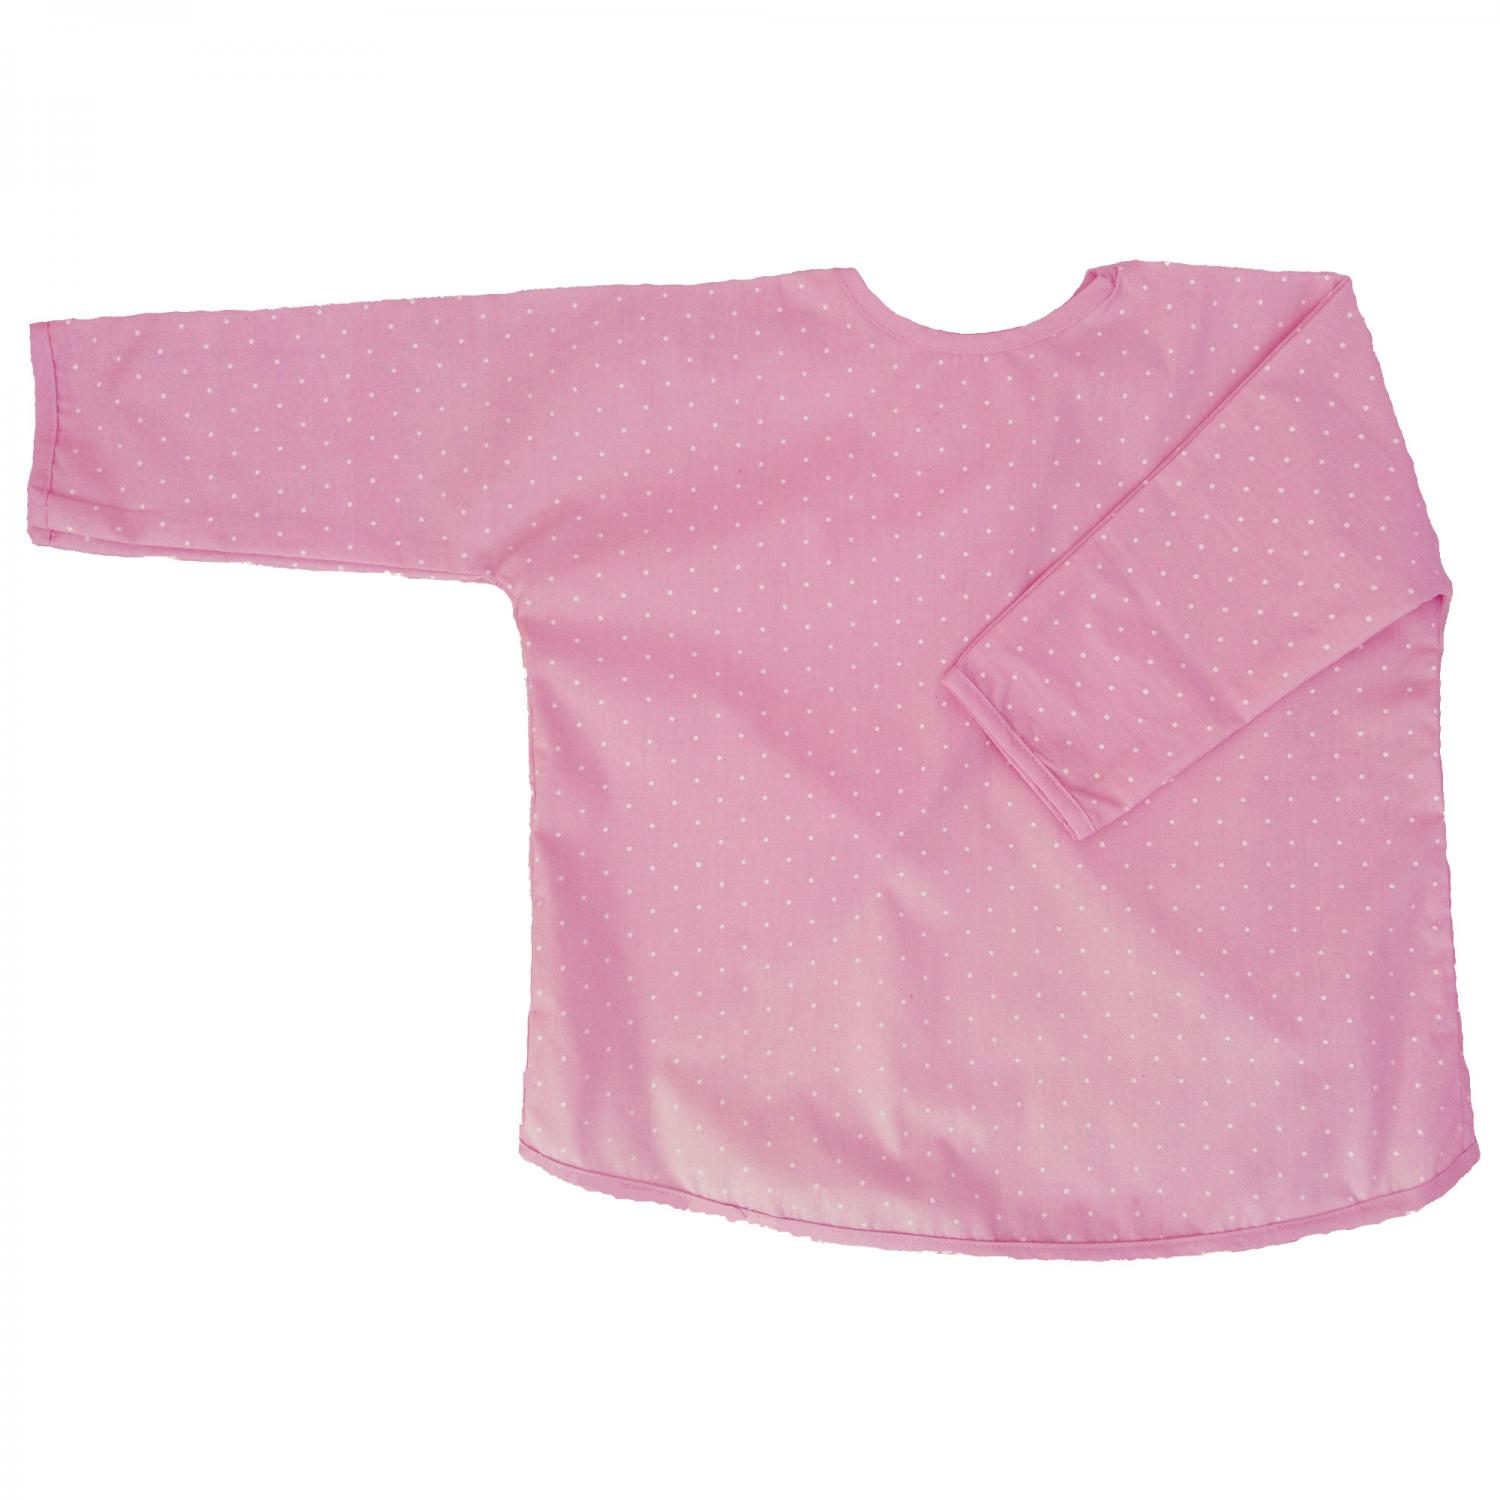 Apron soft pink dotty